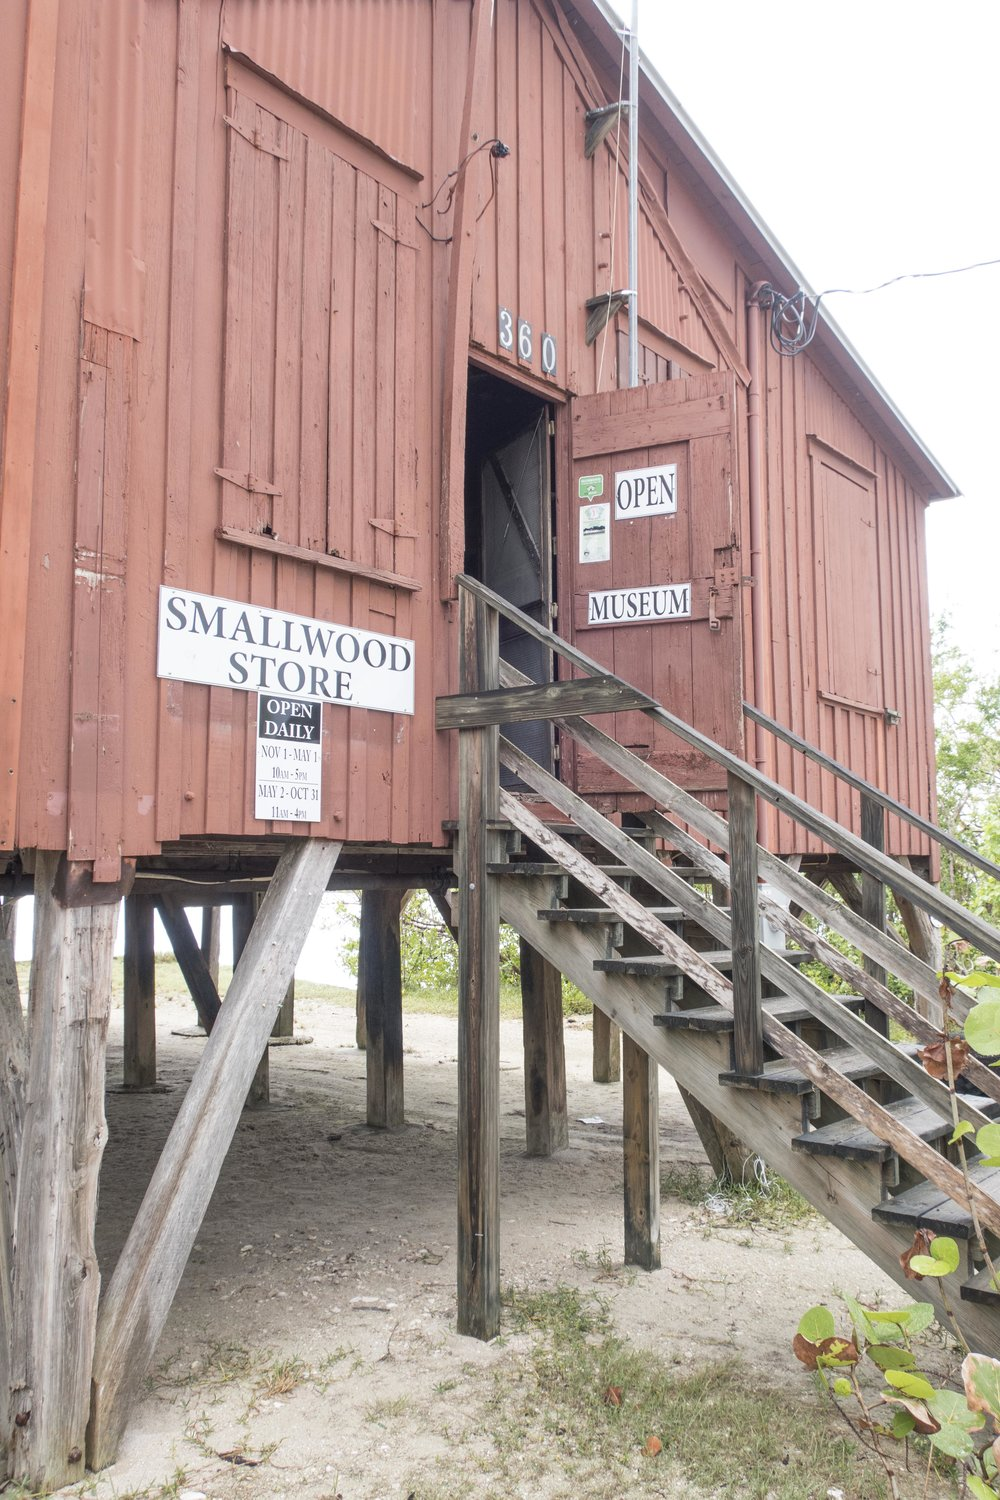 smallwood store - a time capsule of Florida pioneer history